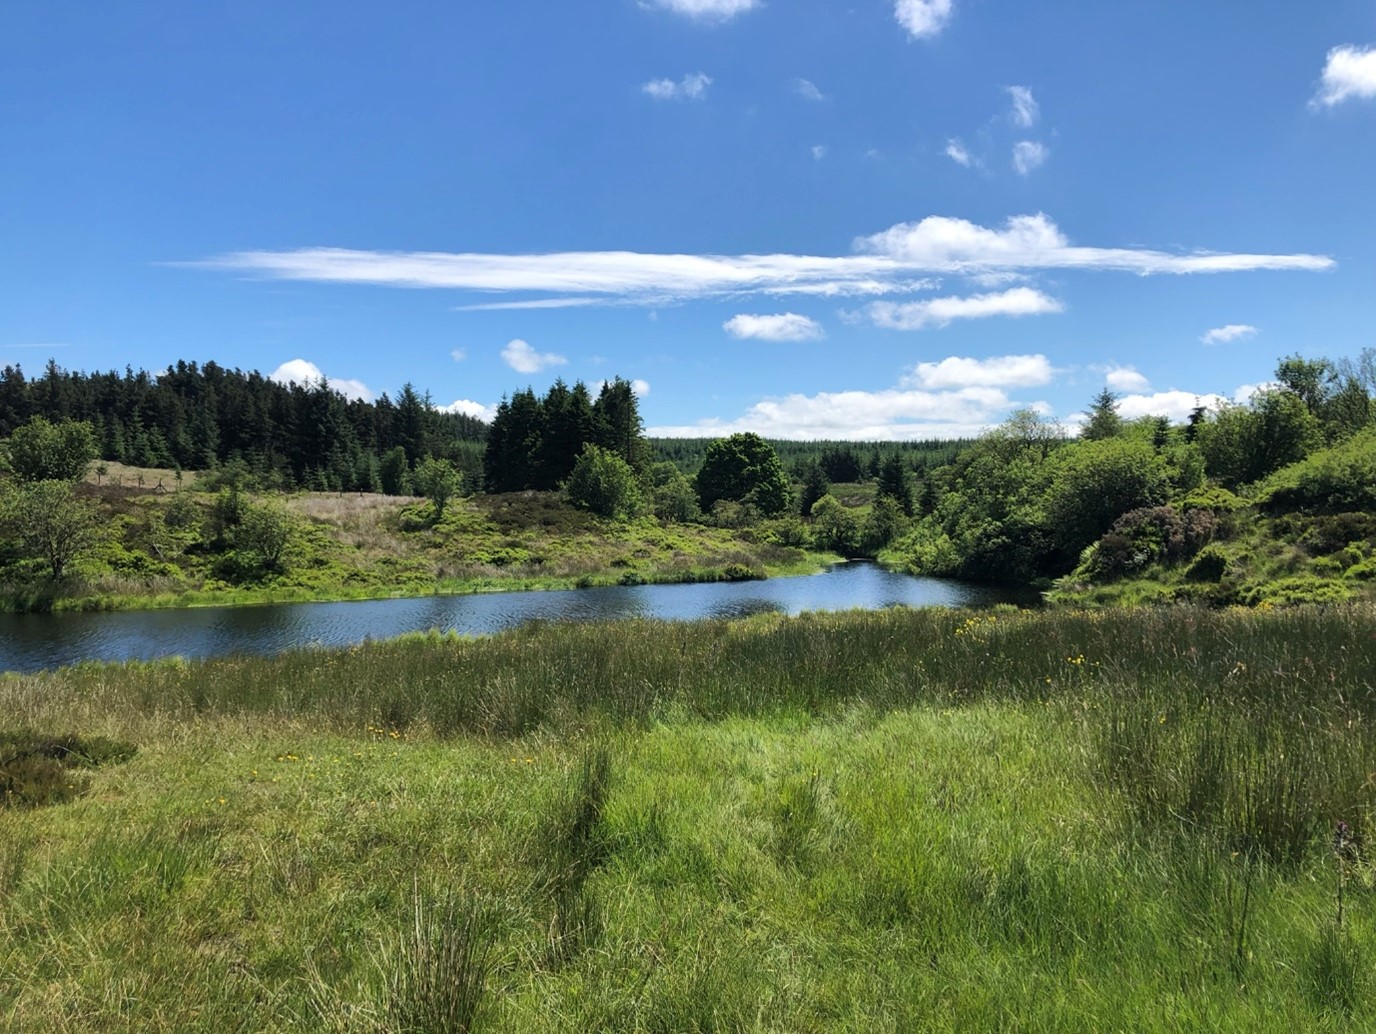 View of lake through mid ulster forests.